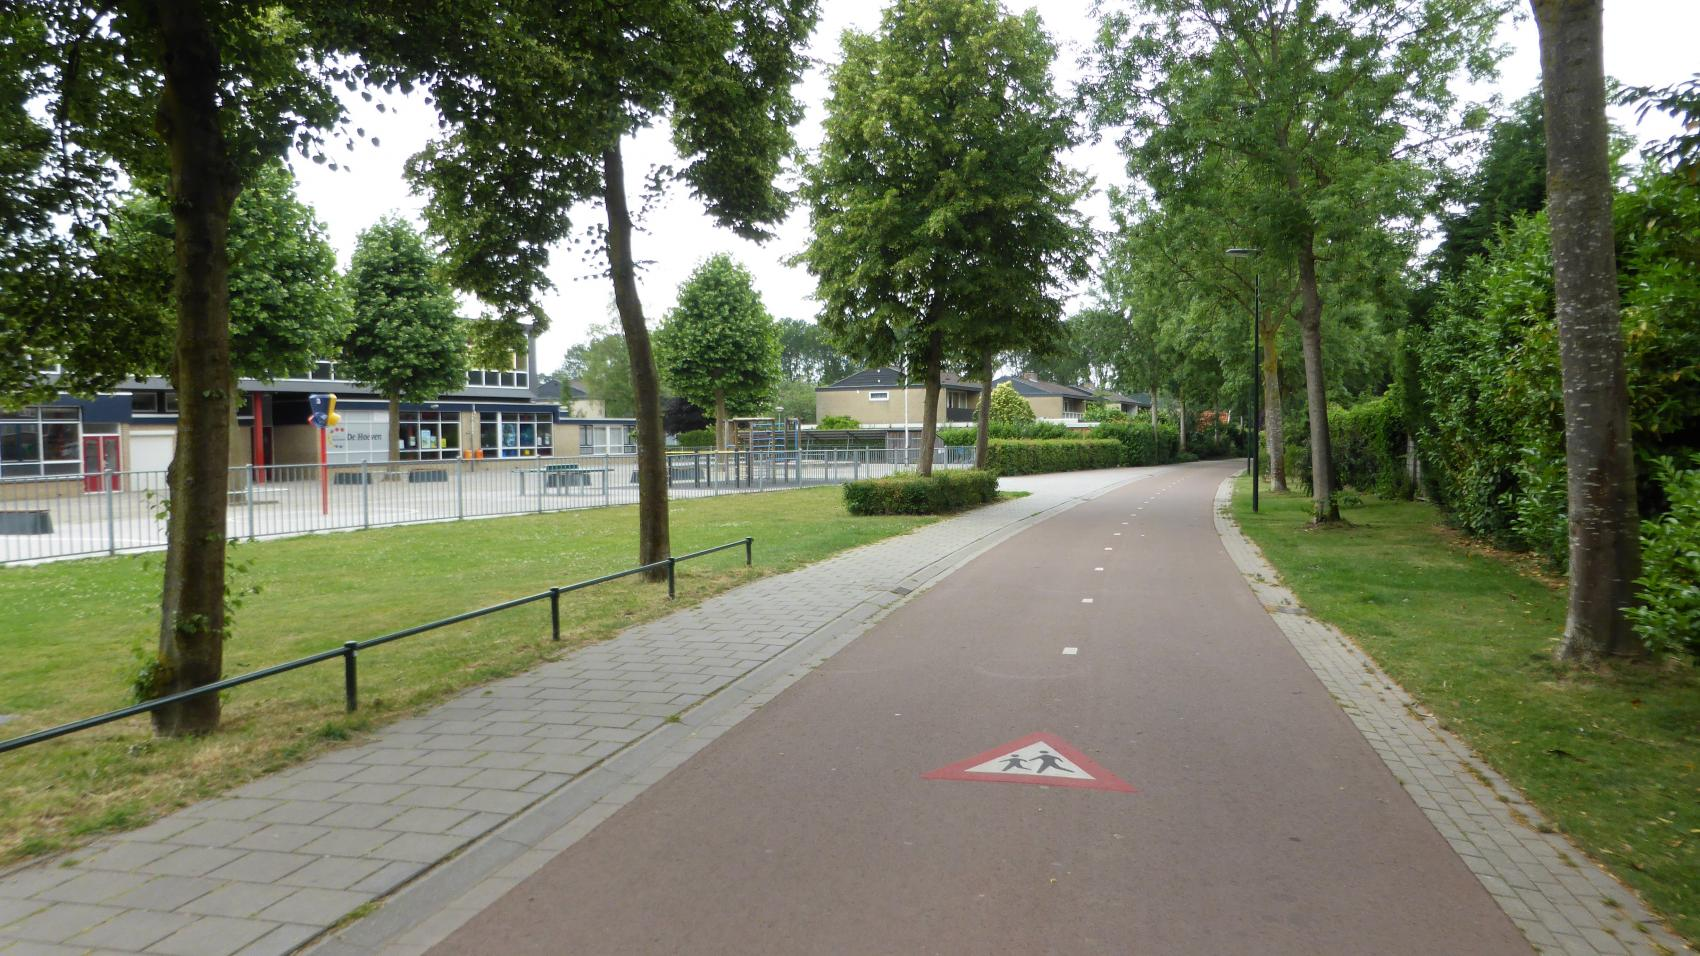 Until eighties this green corridor used to be a car road connecting Beuningen with Nijmegen. Now kids can travel to the catholic elementary school De Hoeven (left side of the picture) by bicycle without being endangered by car traffic.